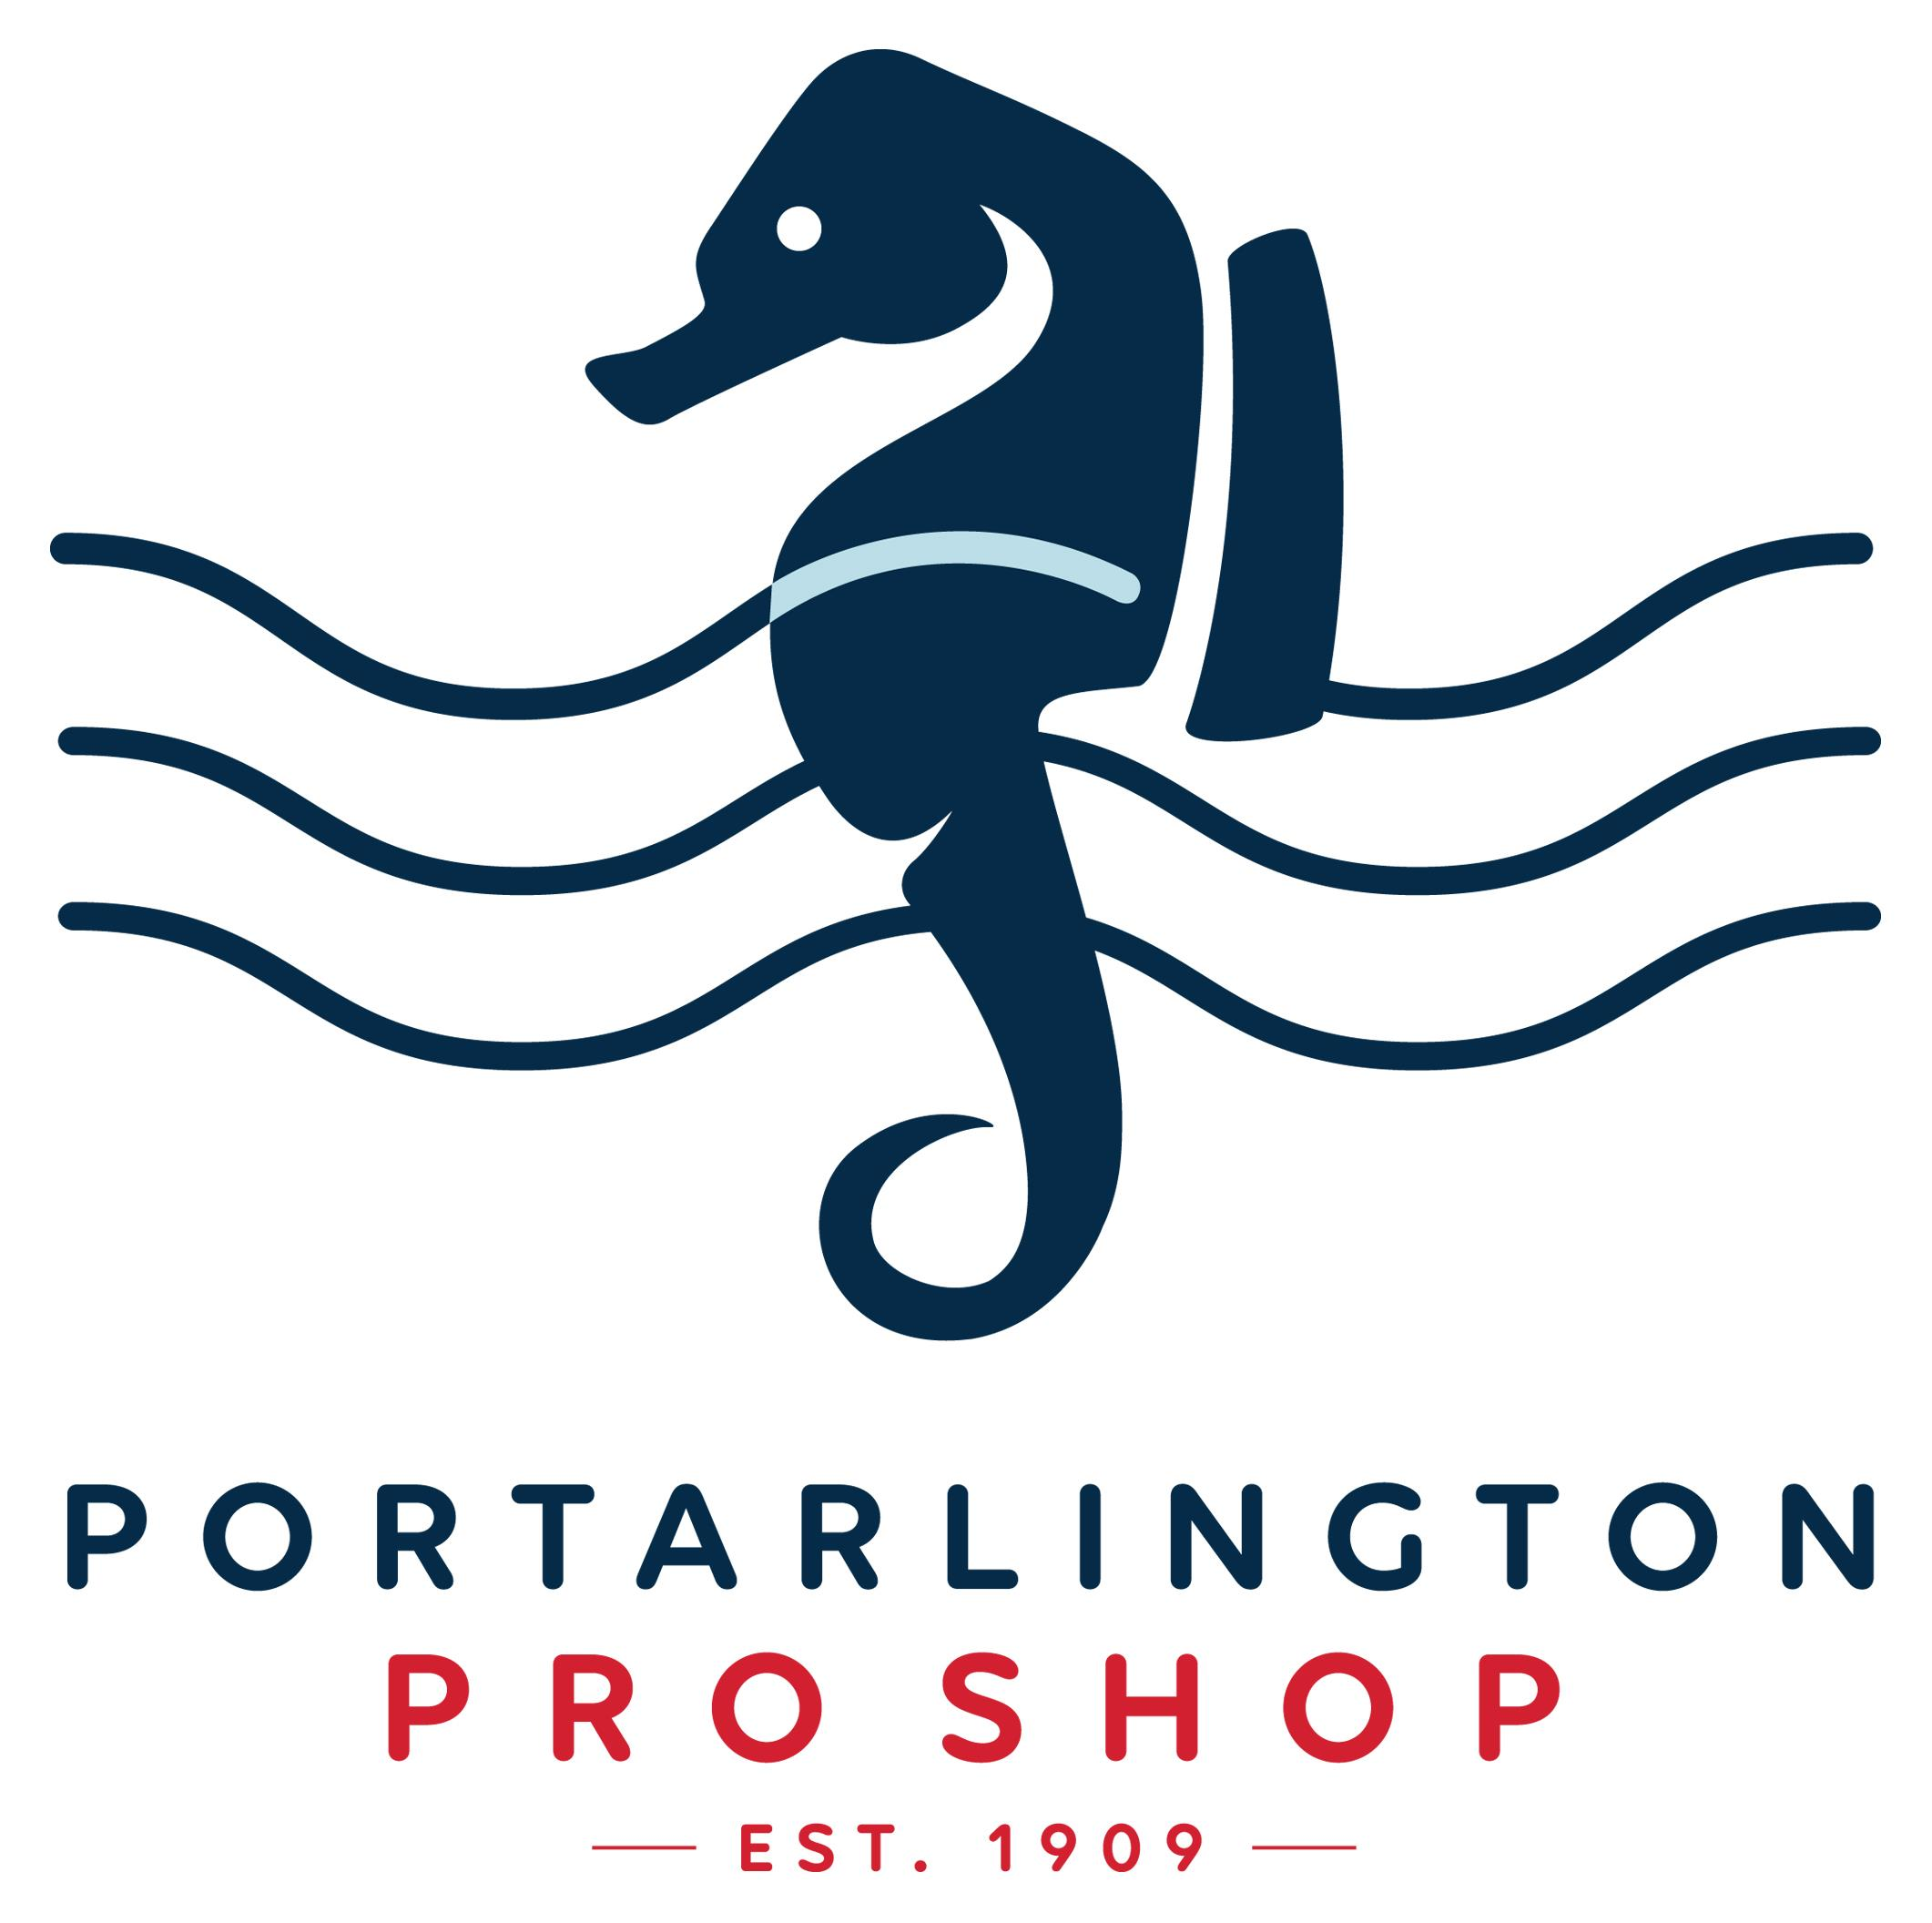 PORTARLINGTON PRO-SHOP